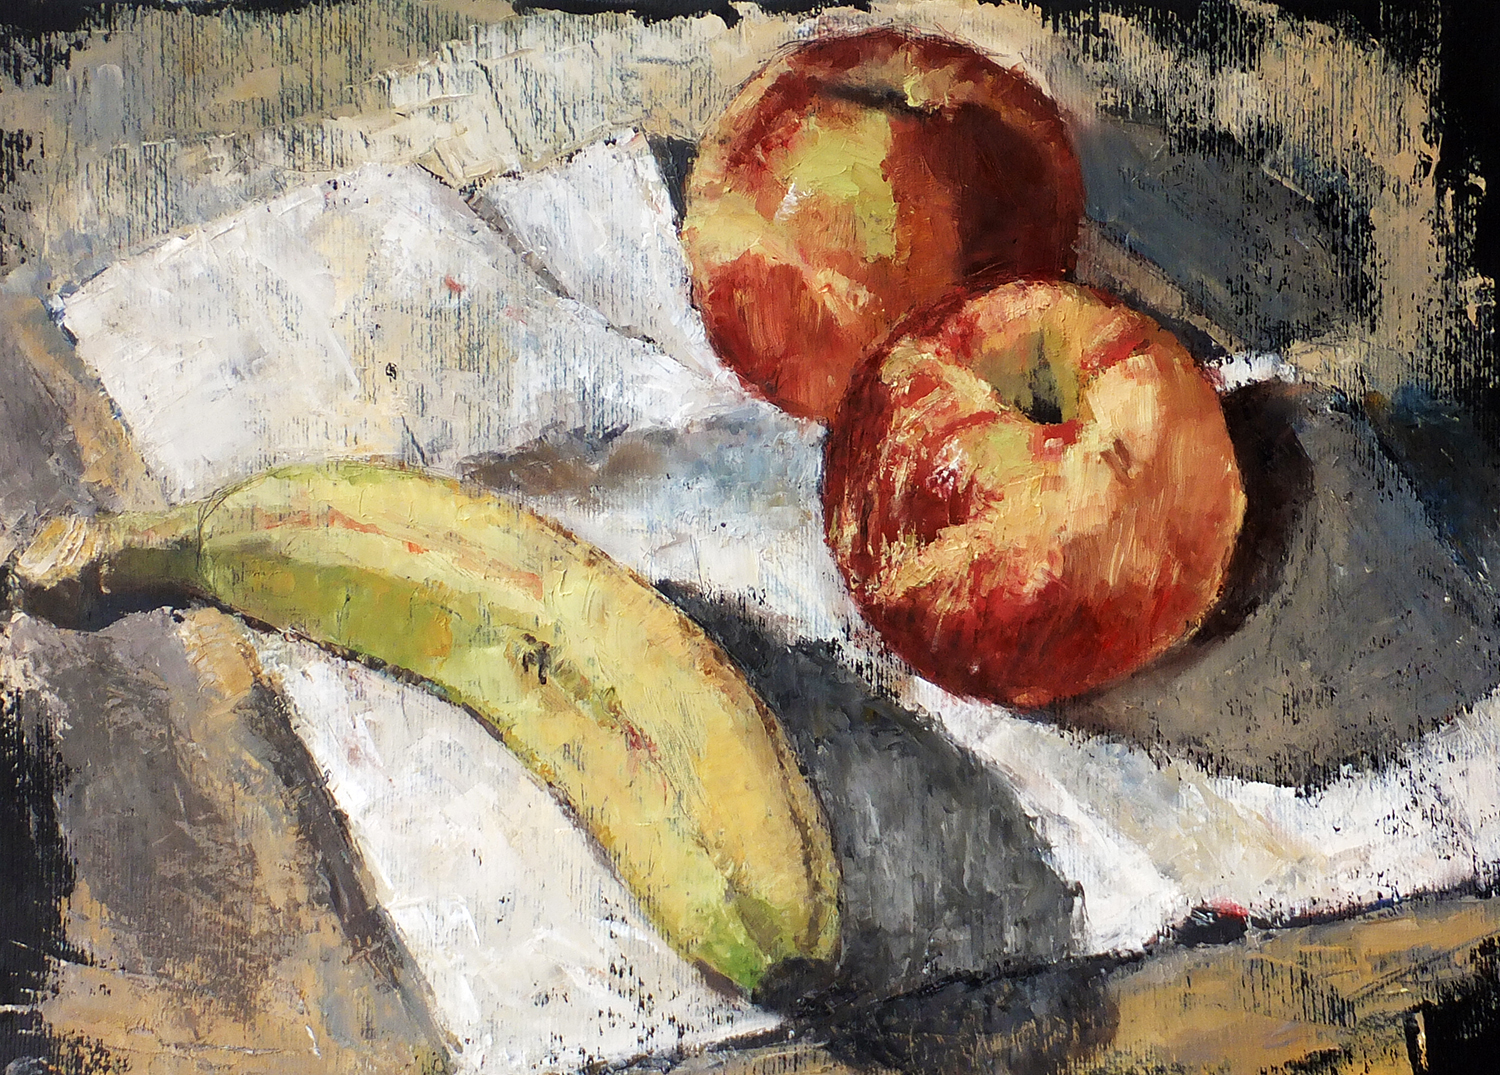 Fruit study, oil on paper, 50x35cm